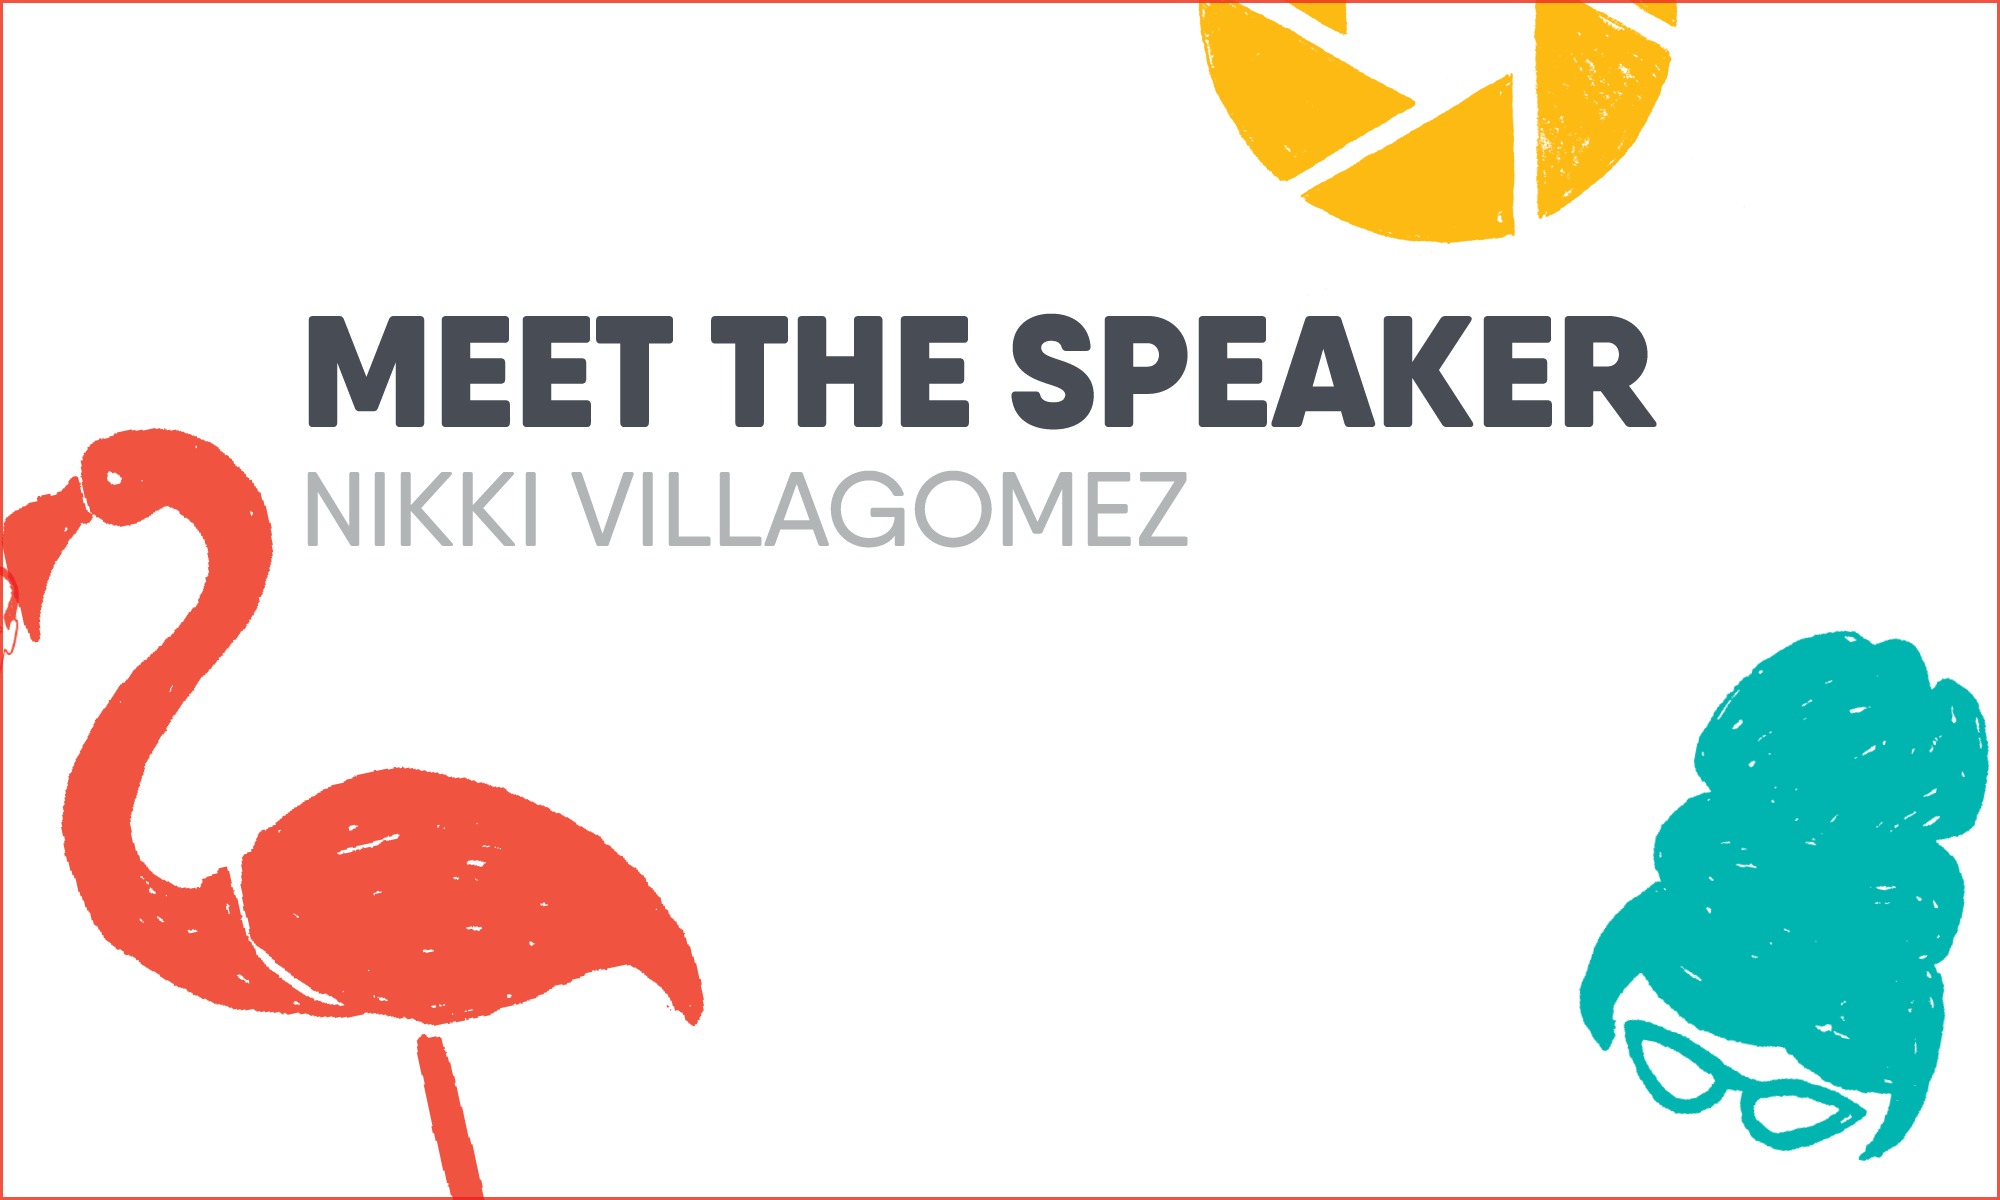 Meet the Speaker: Nikki Villagomez